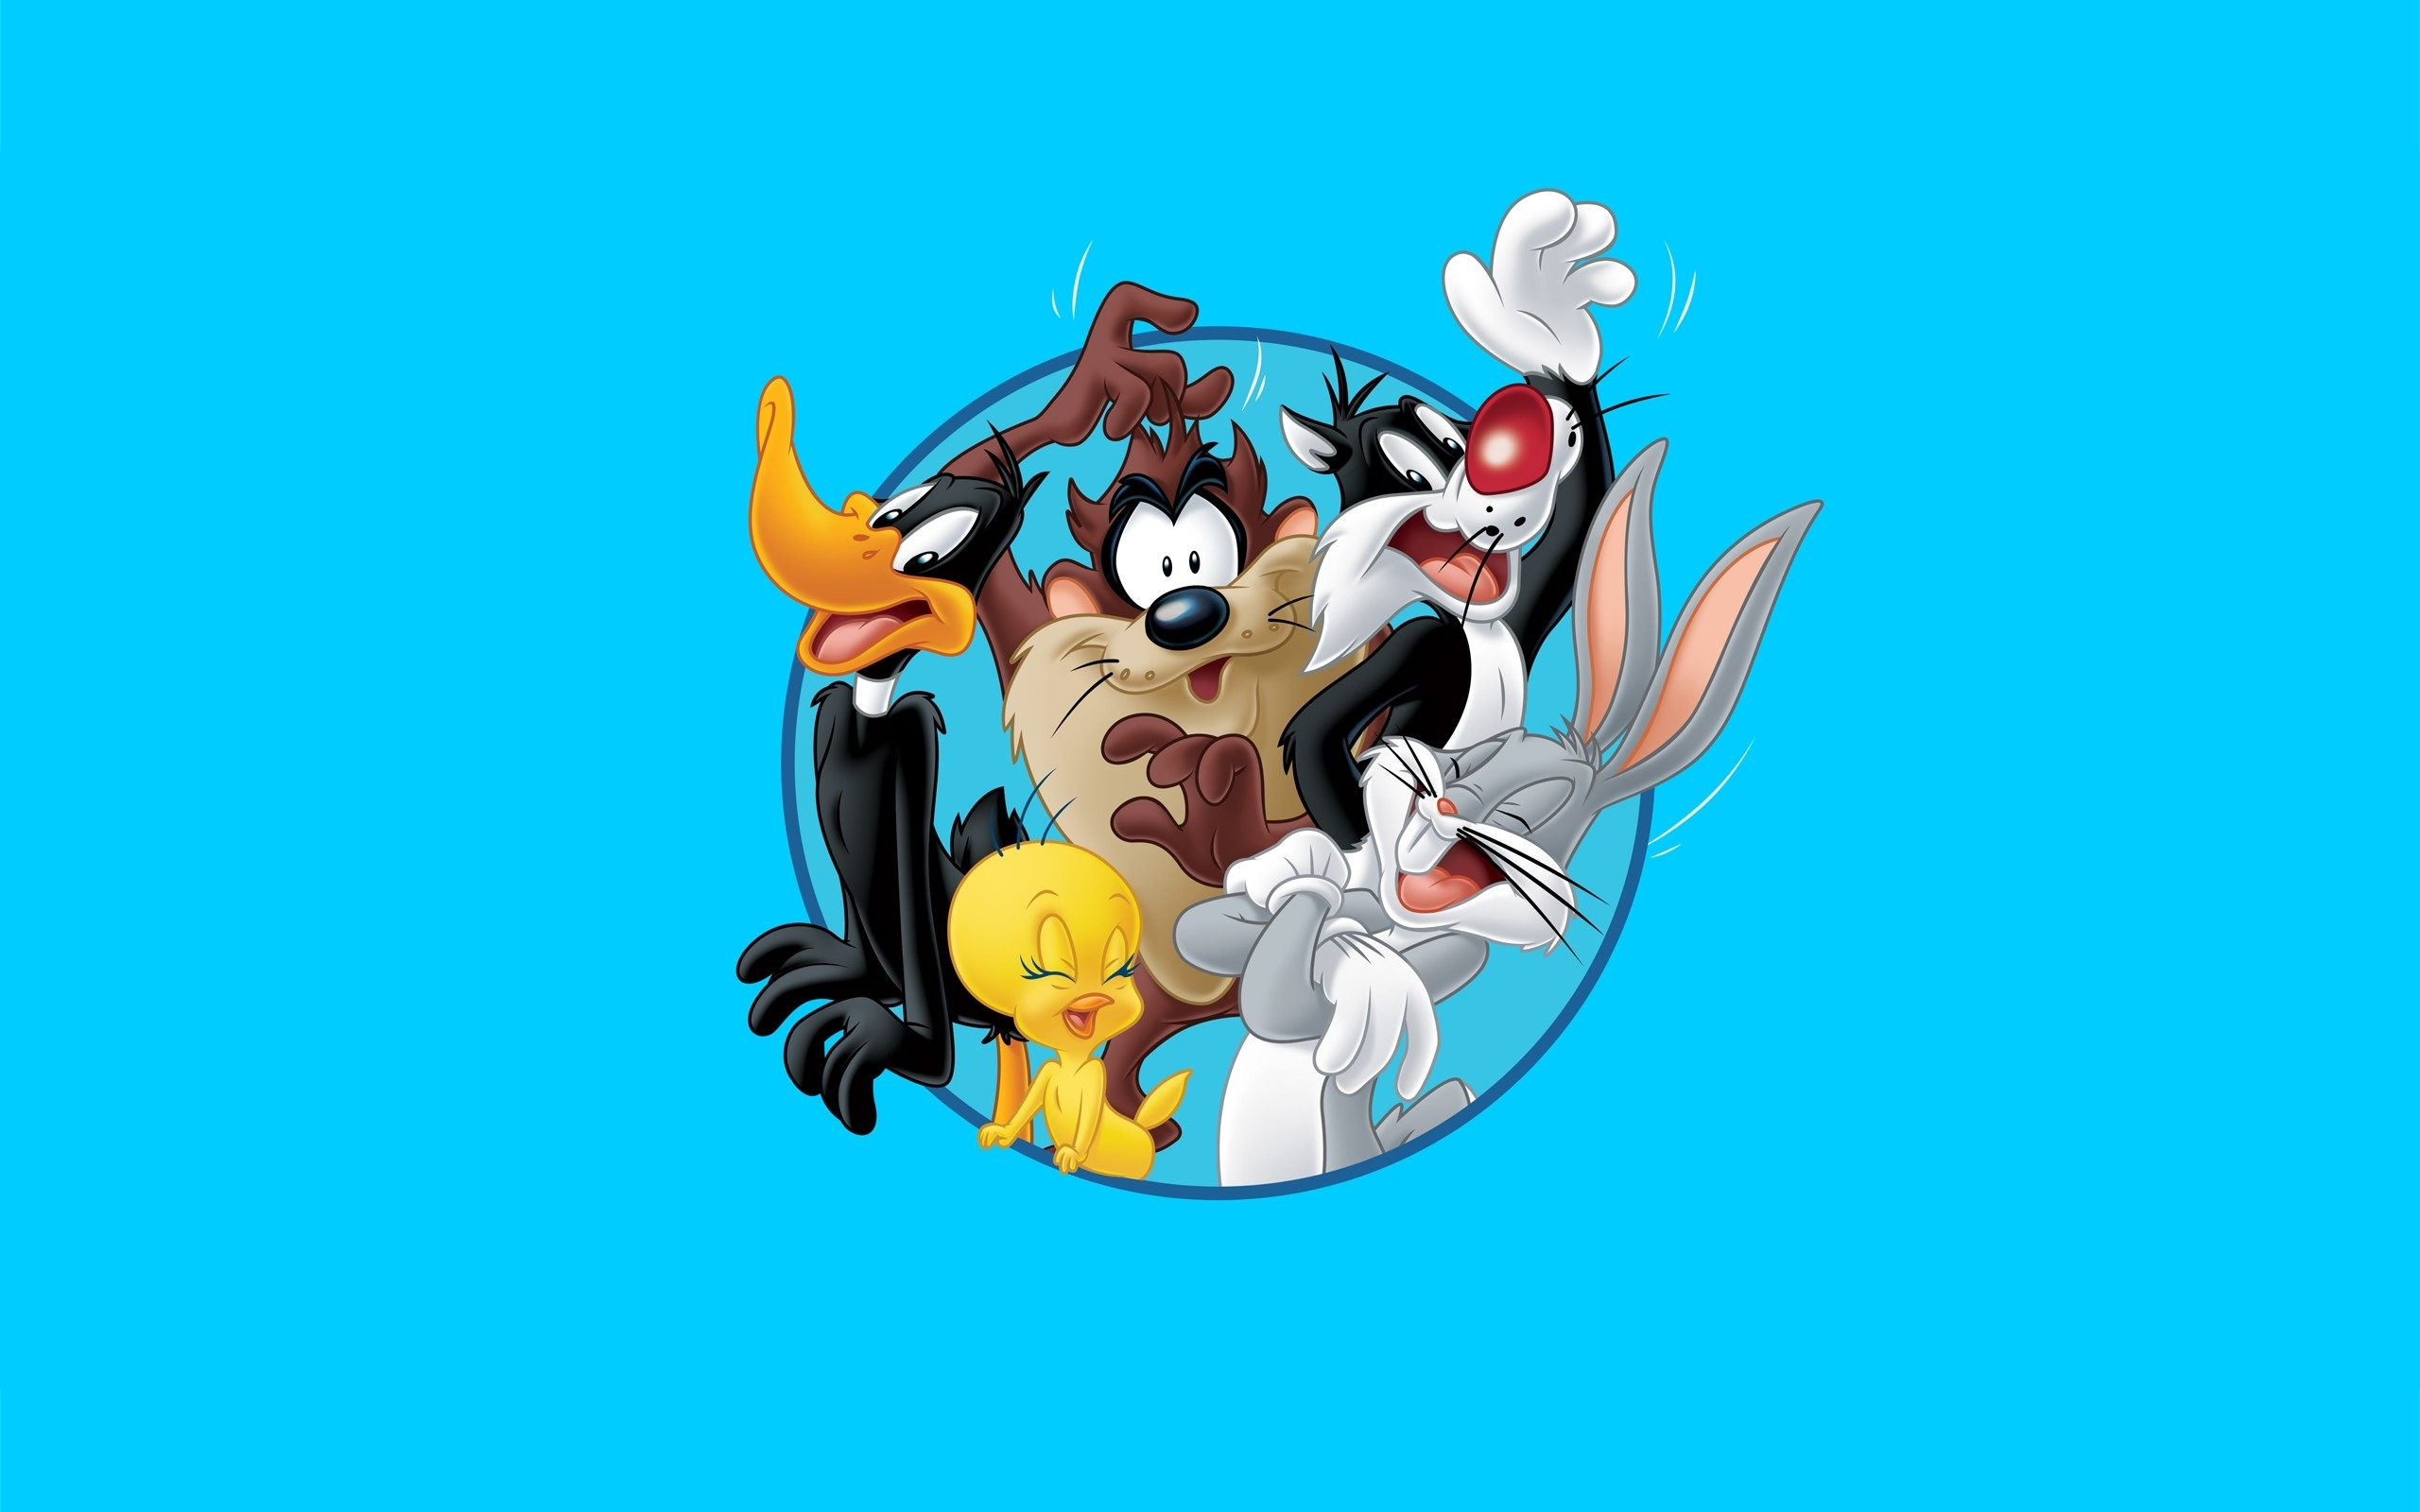 looney tunes wallpaper - wallpaper, high definition, high quality